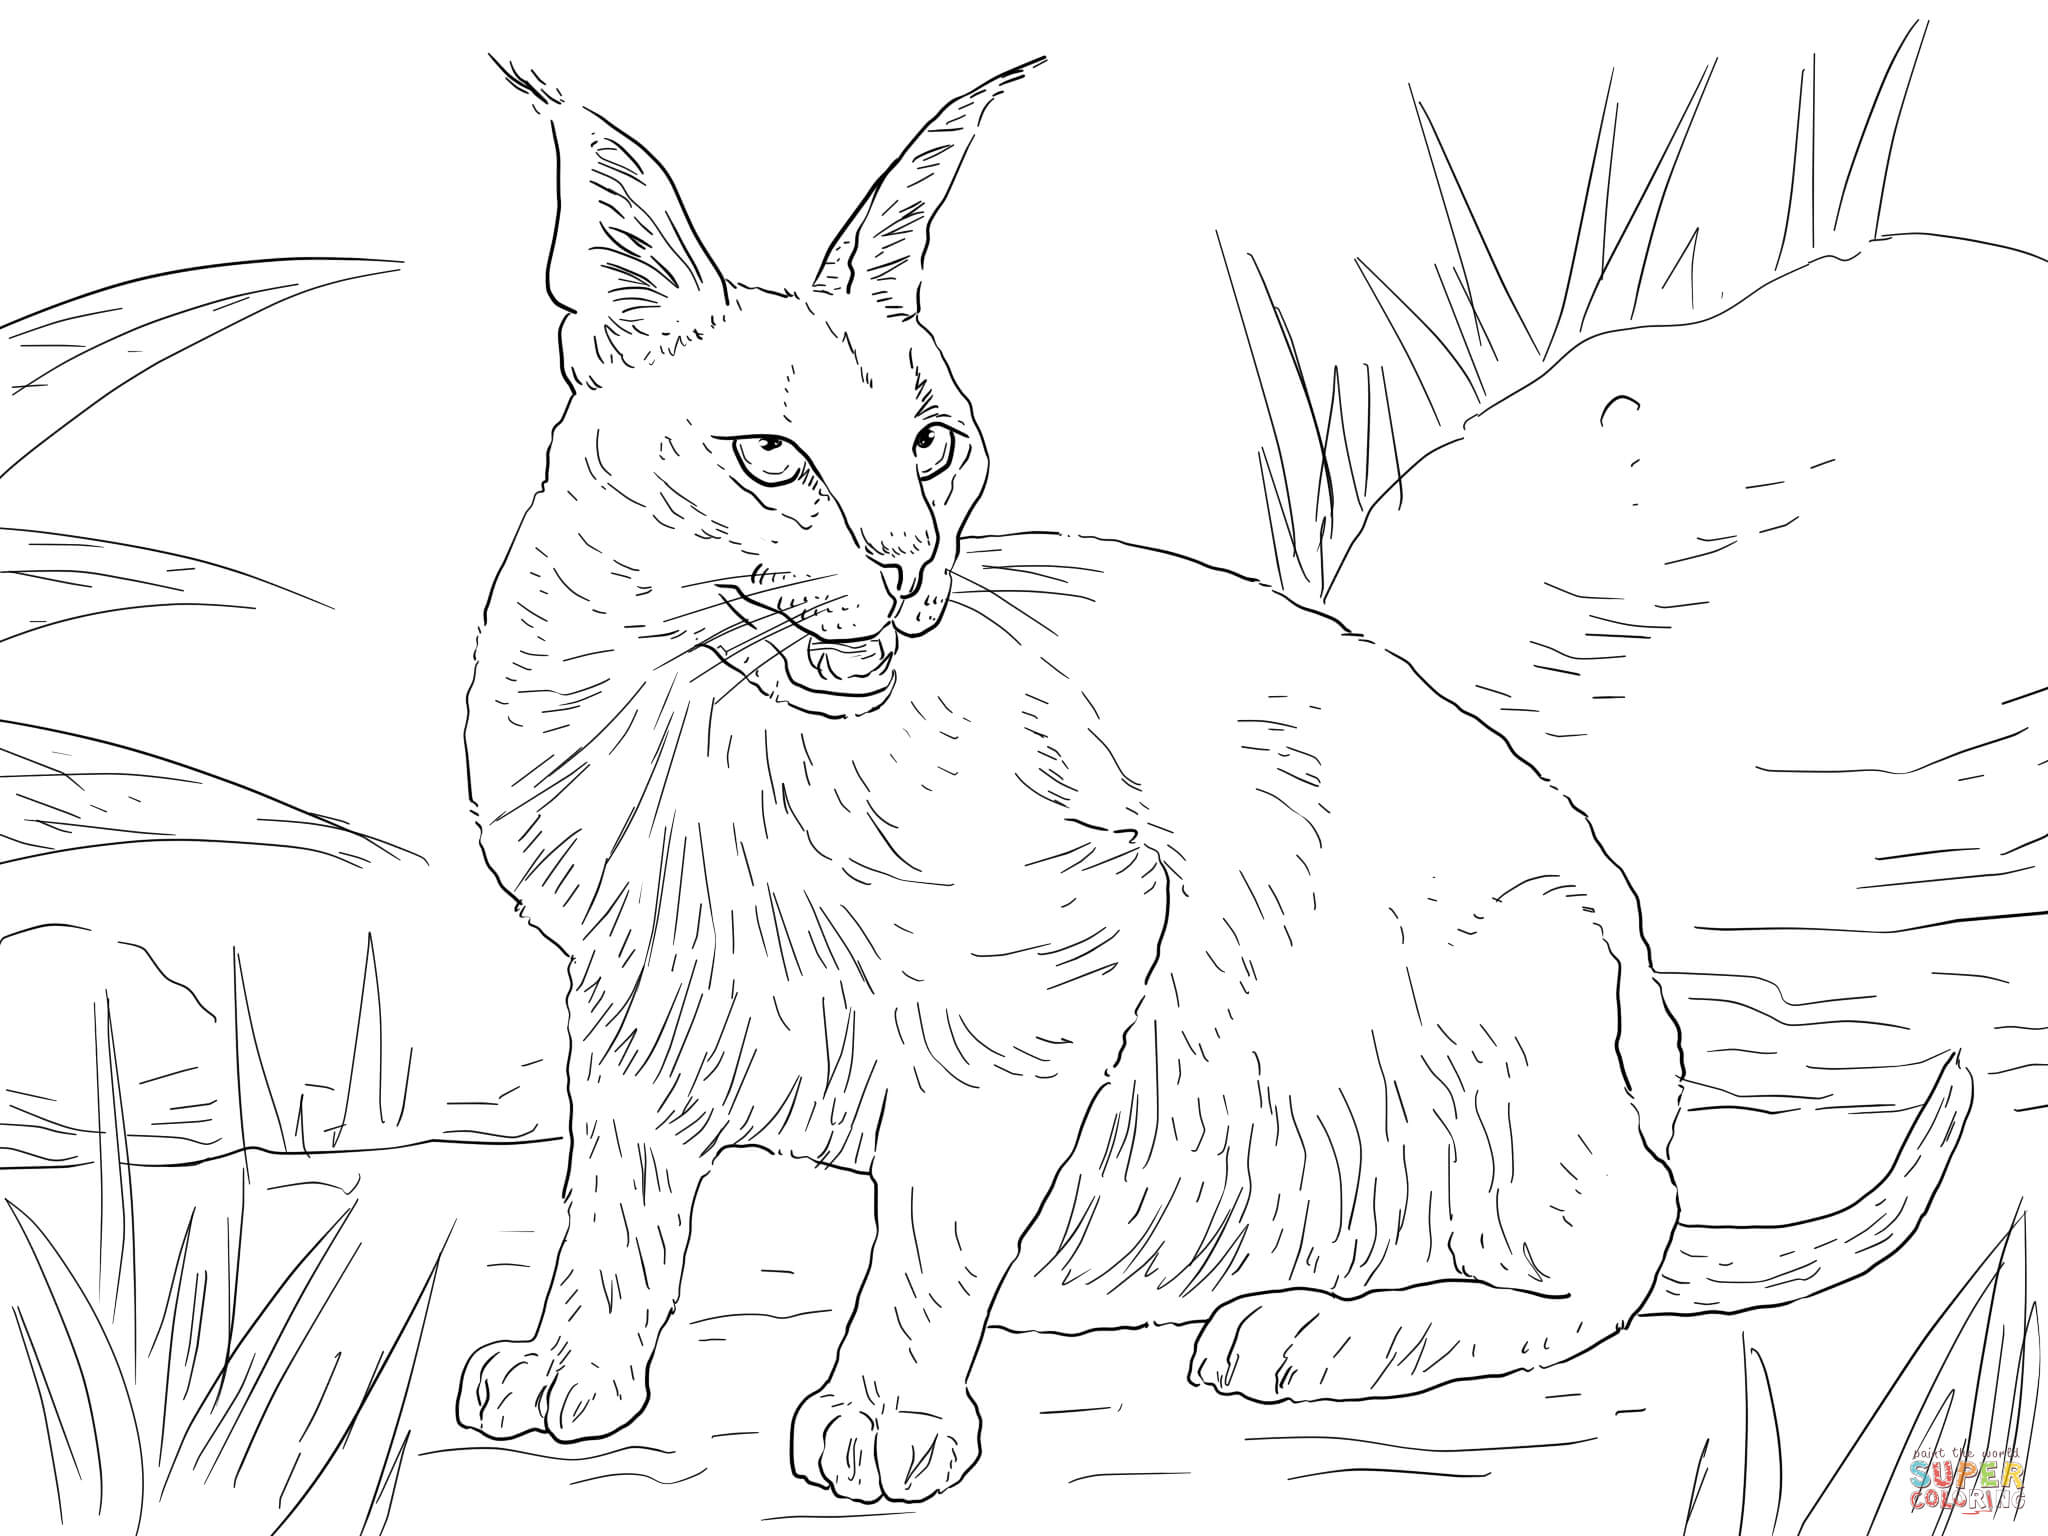 wild cat coloring pages hard owl coloring pages tiger liked wild cat in the wild coloring cat wild pages